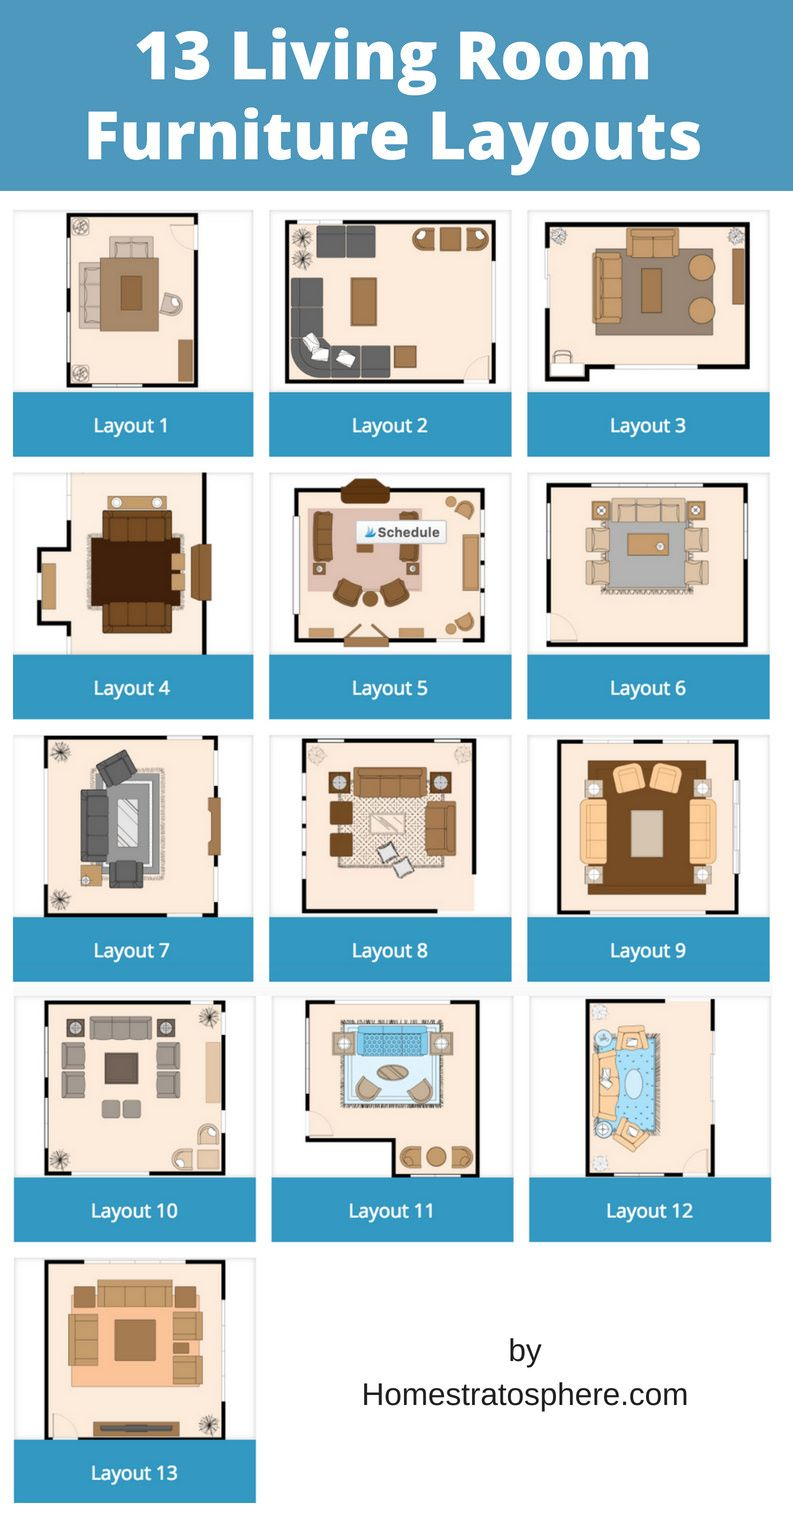 13 Living Room Furniture Layout Examples (Floor Plan Illustrations) images